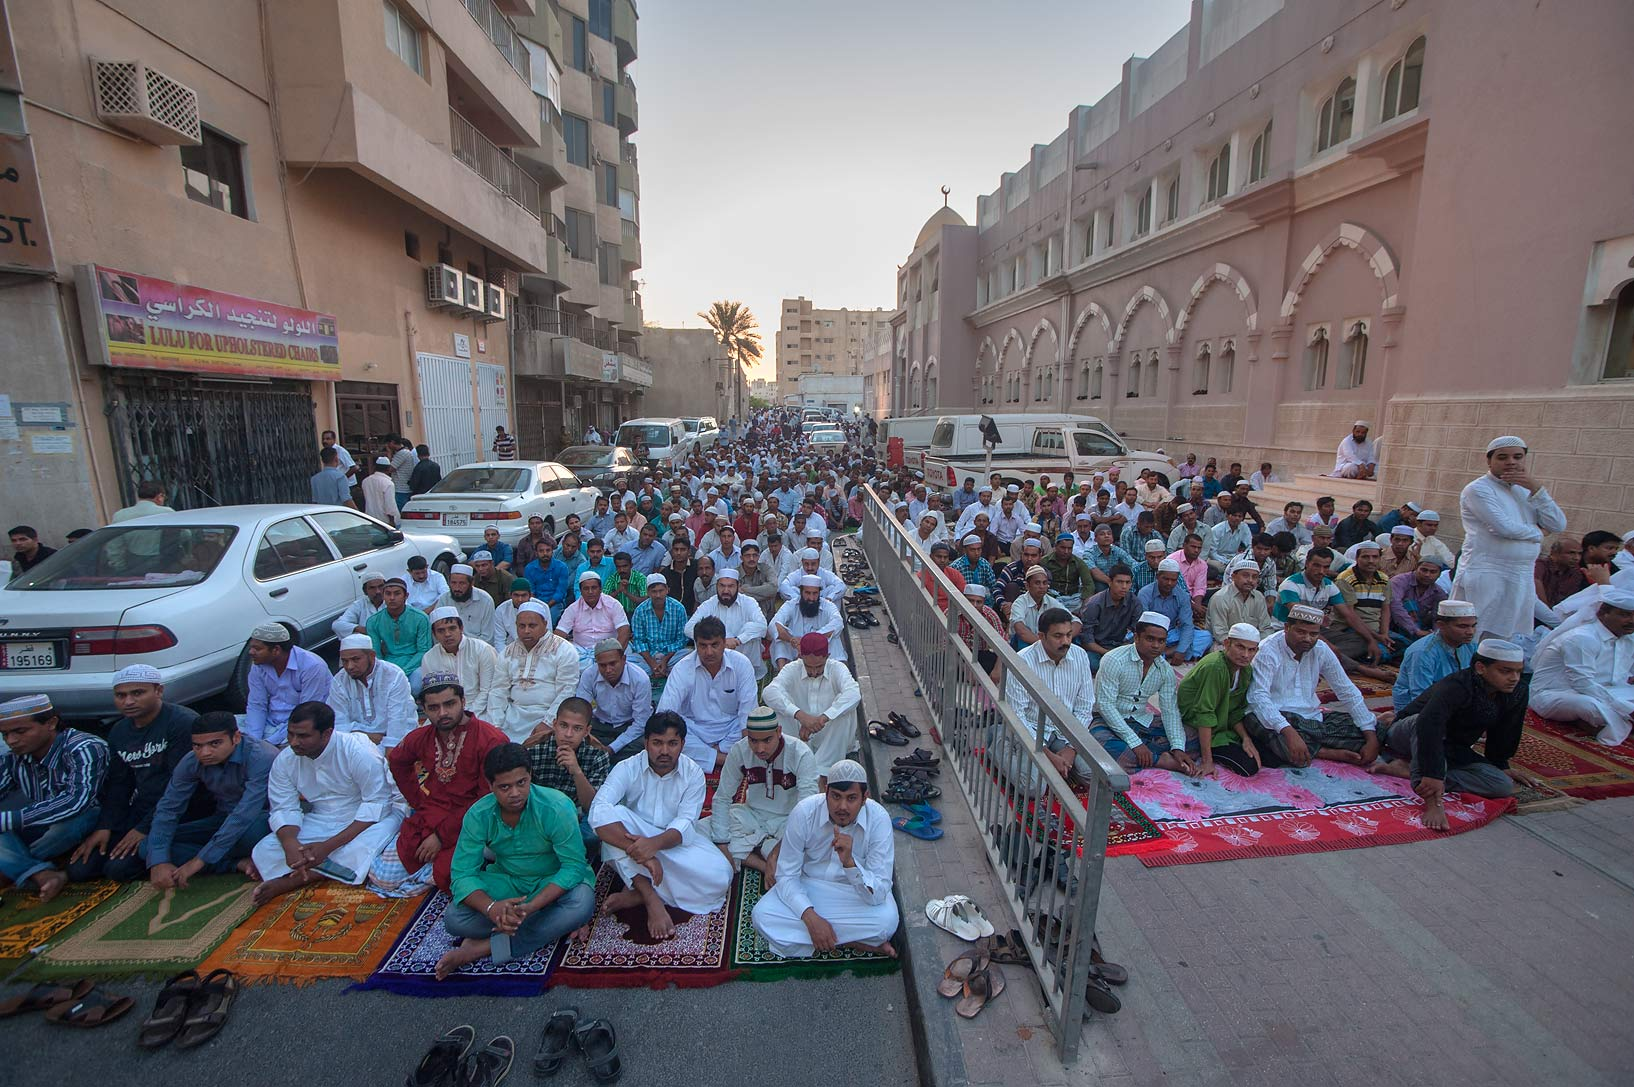 People gathering for Eid al-Adha prayer near Al...masjid) in Musheirib area. Doha, Qatar